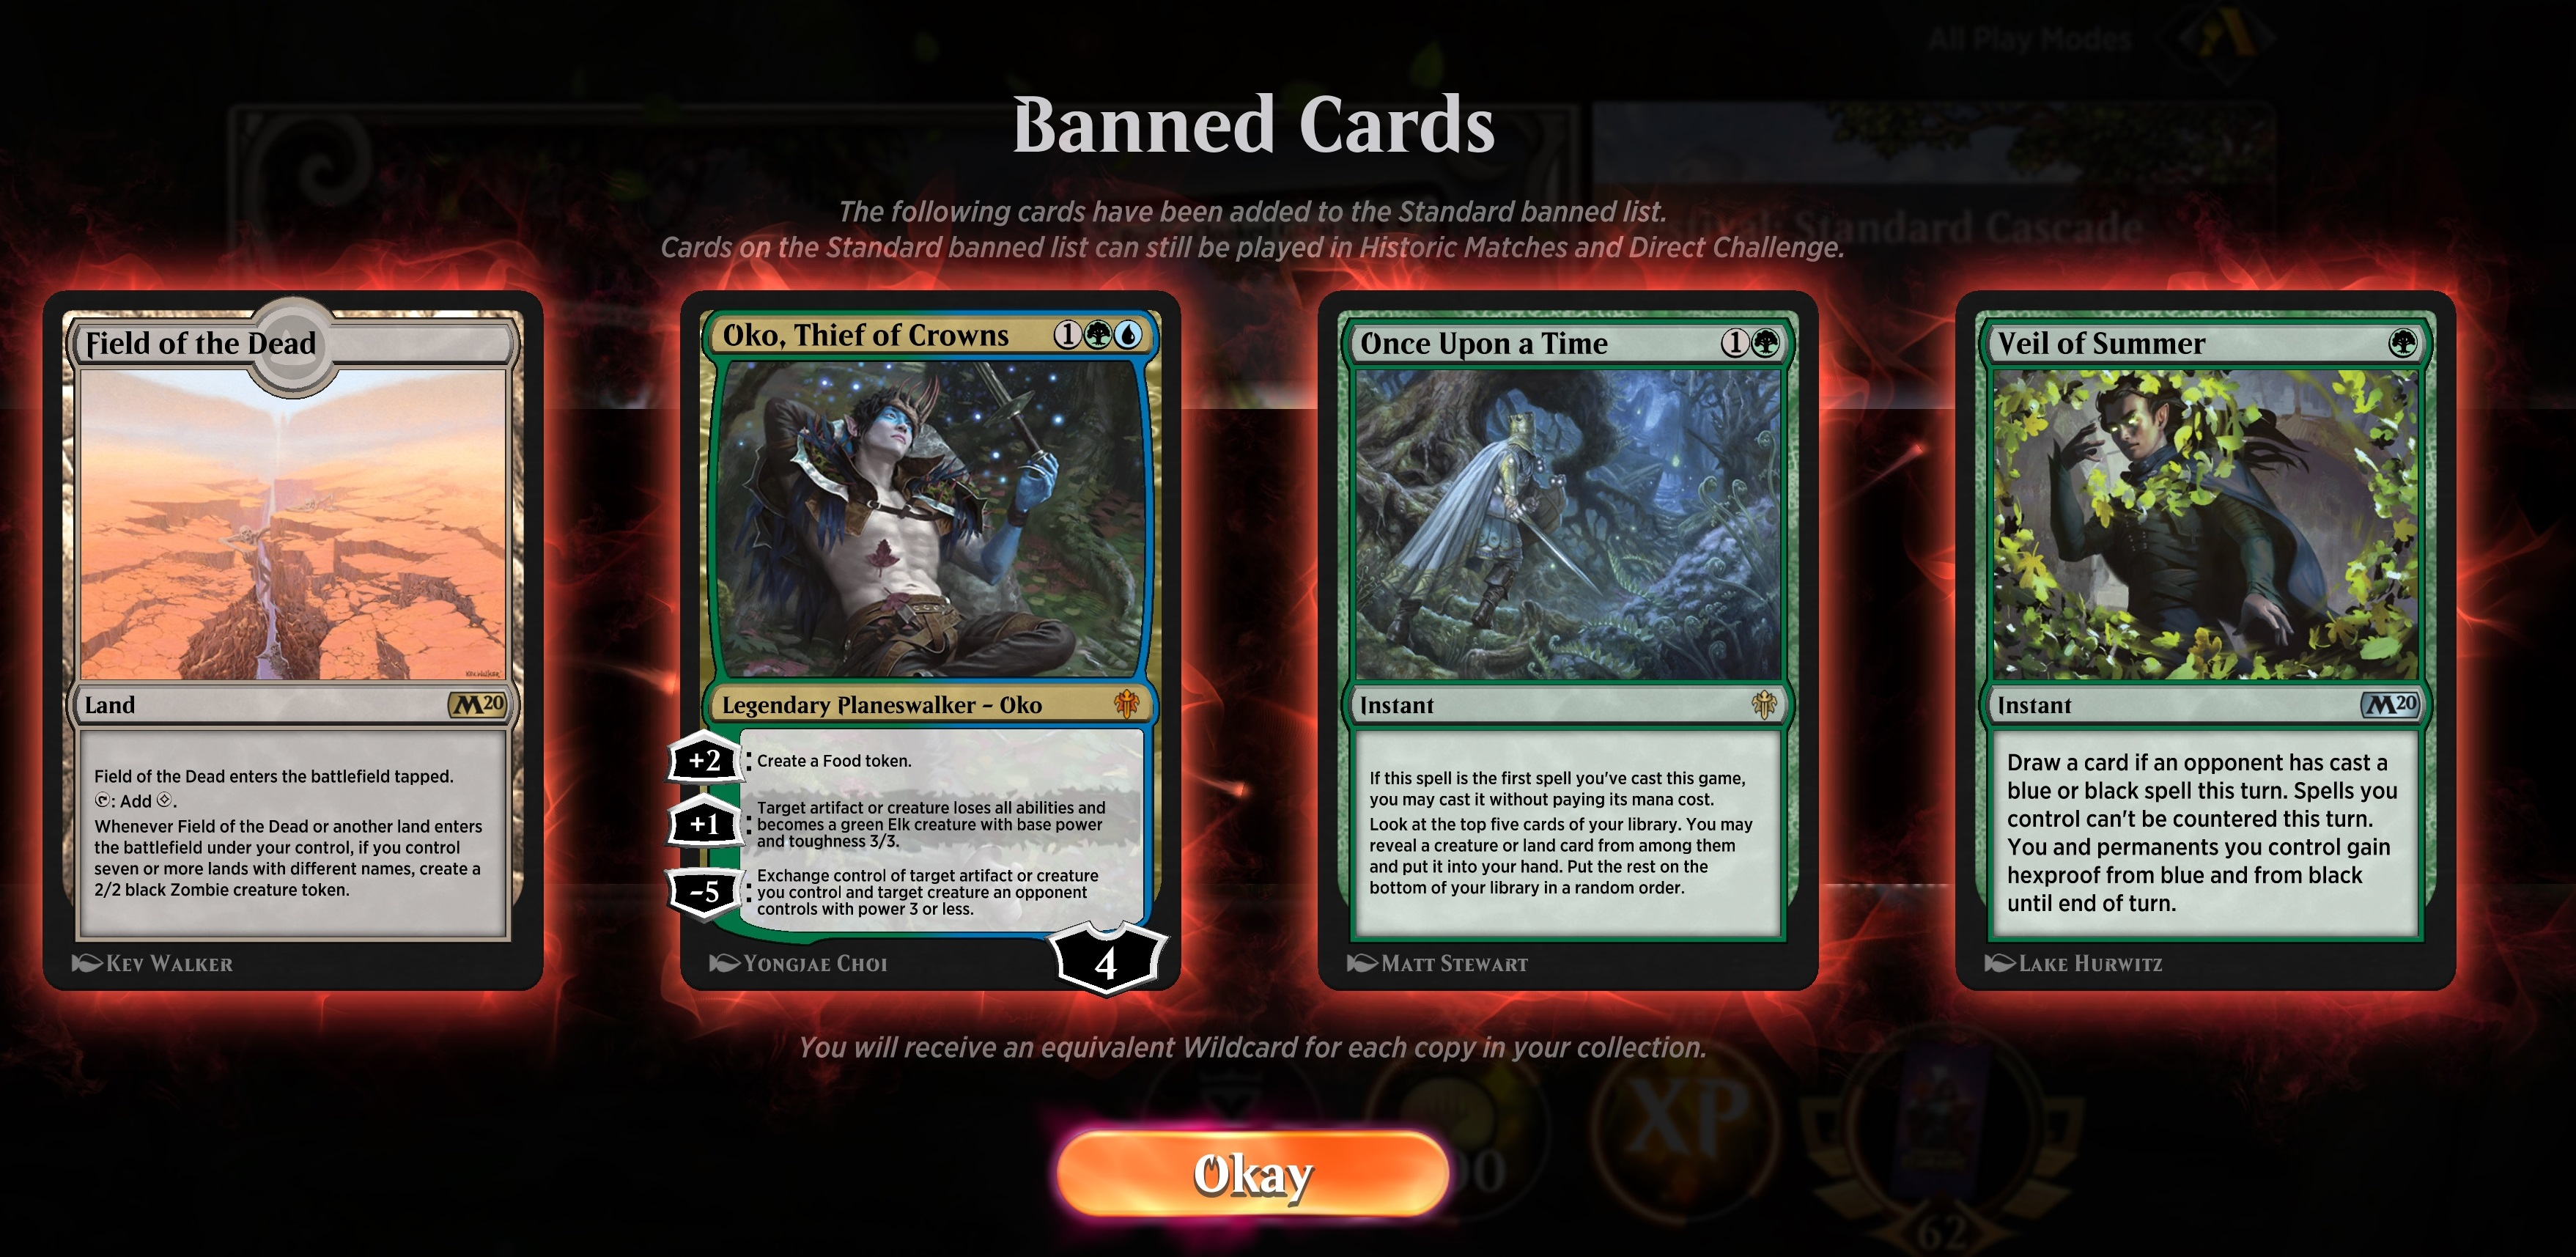 Oko has been banned from Magic: The Gathering standard play, which includes Arena screenshot